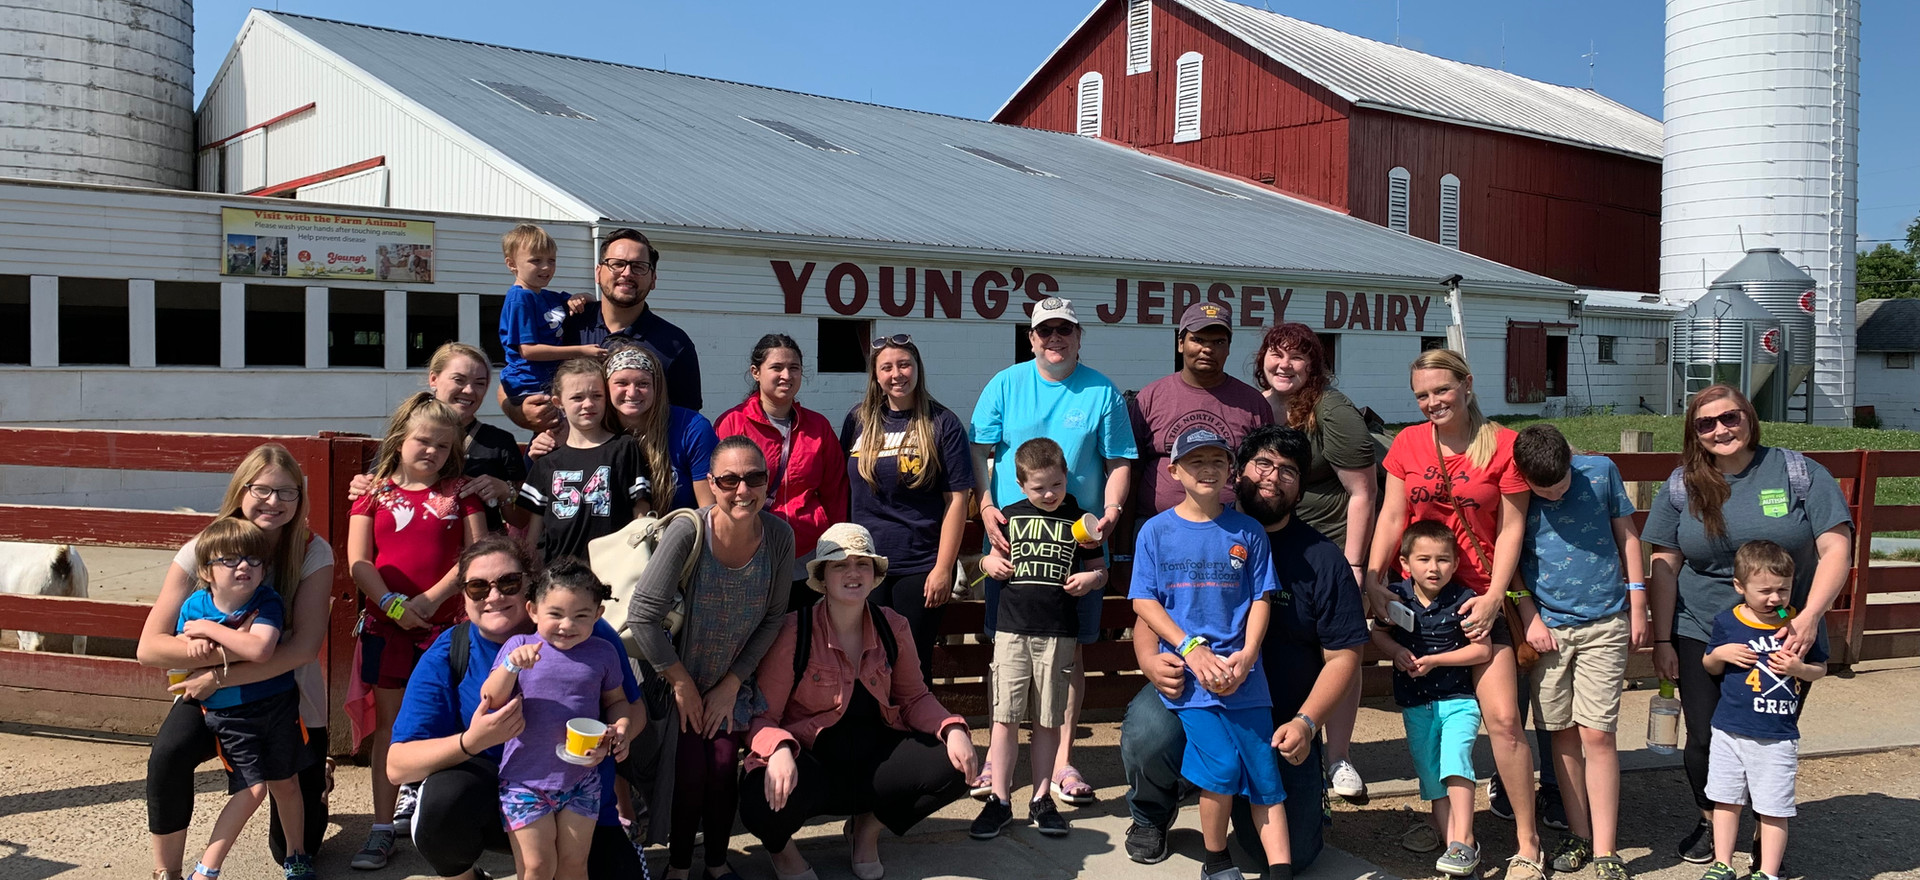 Young's Dairy Farm Outing!